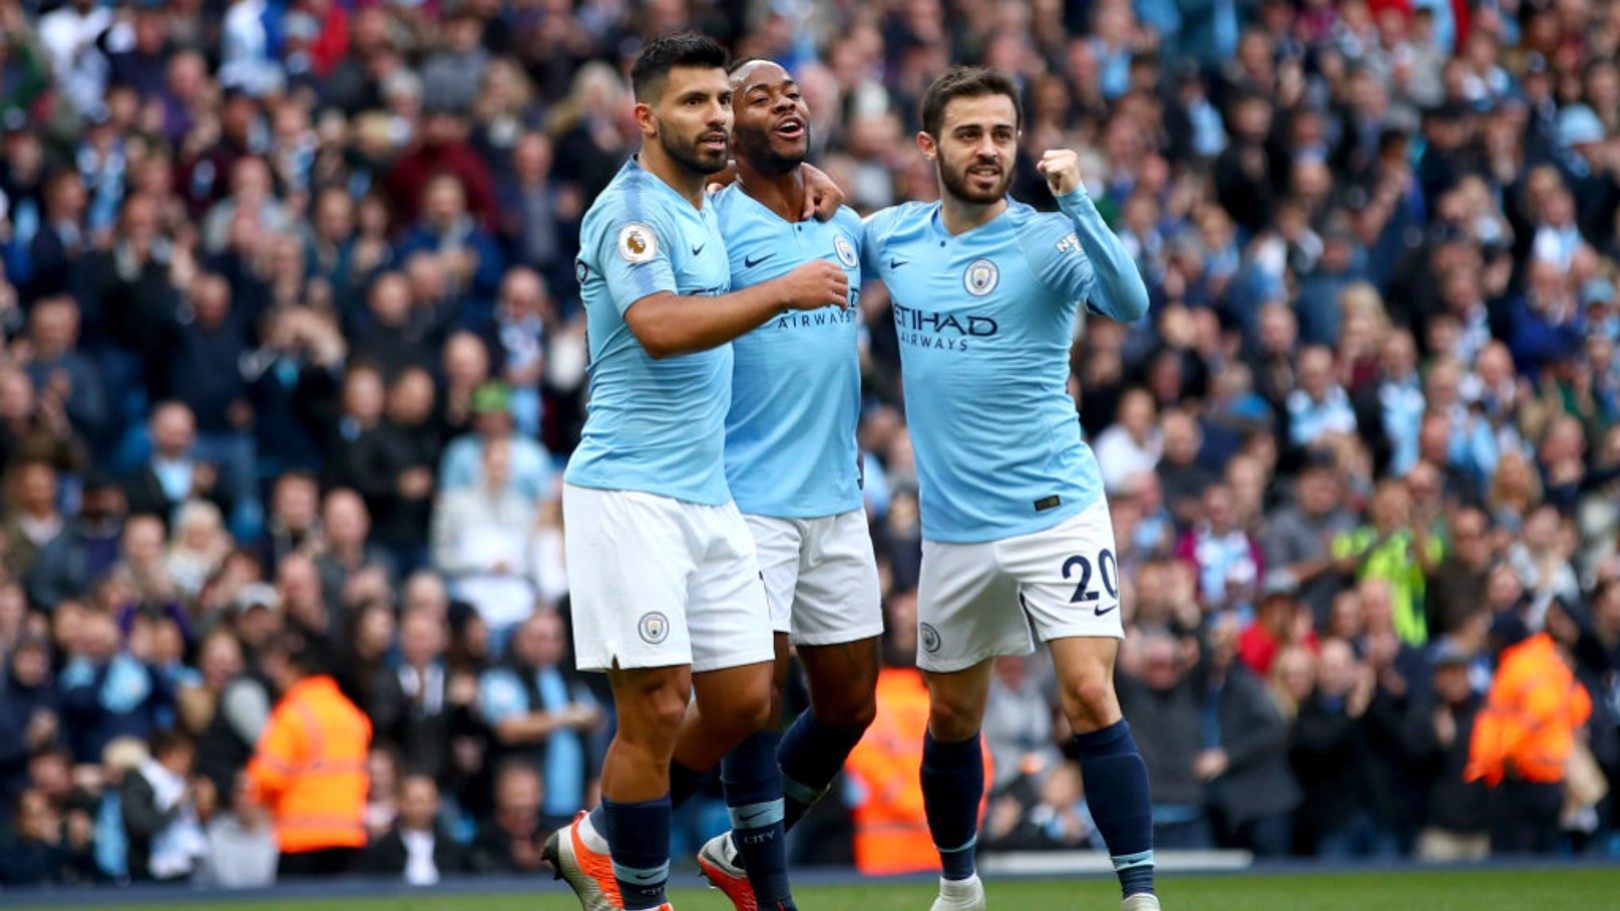 NOMINEES: Sergio Aguero, Bernardo Silva and Raheem Sterling are shortlisted for Premier League Player of the Season.